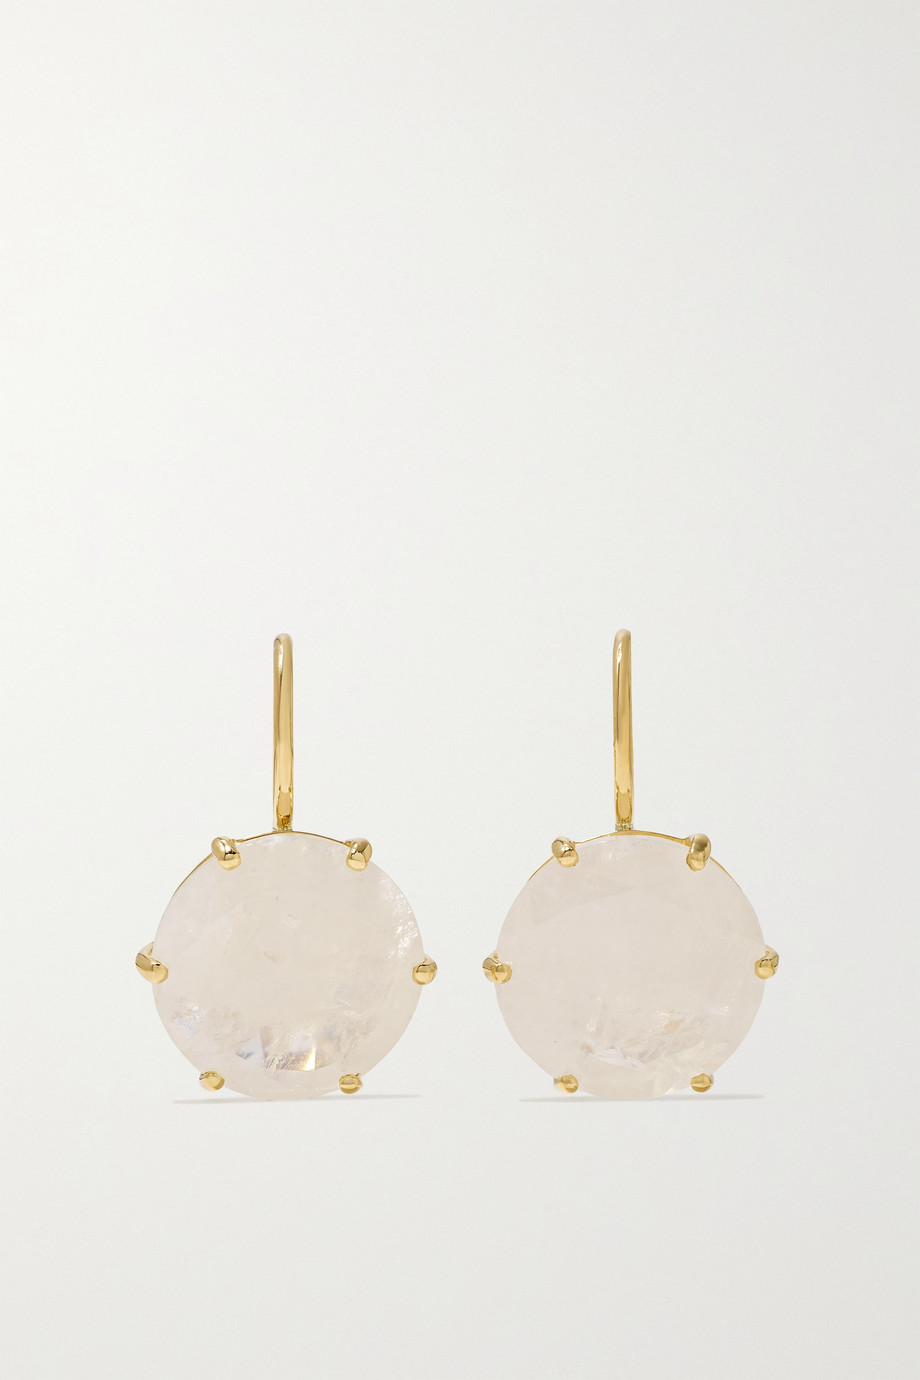 ANDREA FOHRMAN Georgia 18-karat gold moonstone earrings